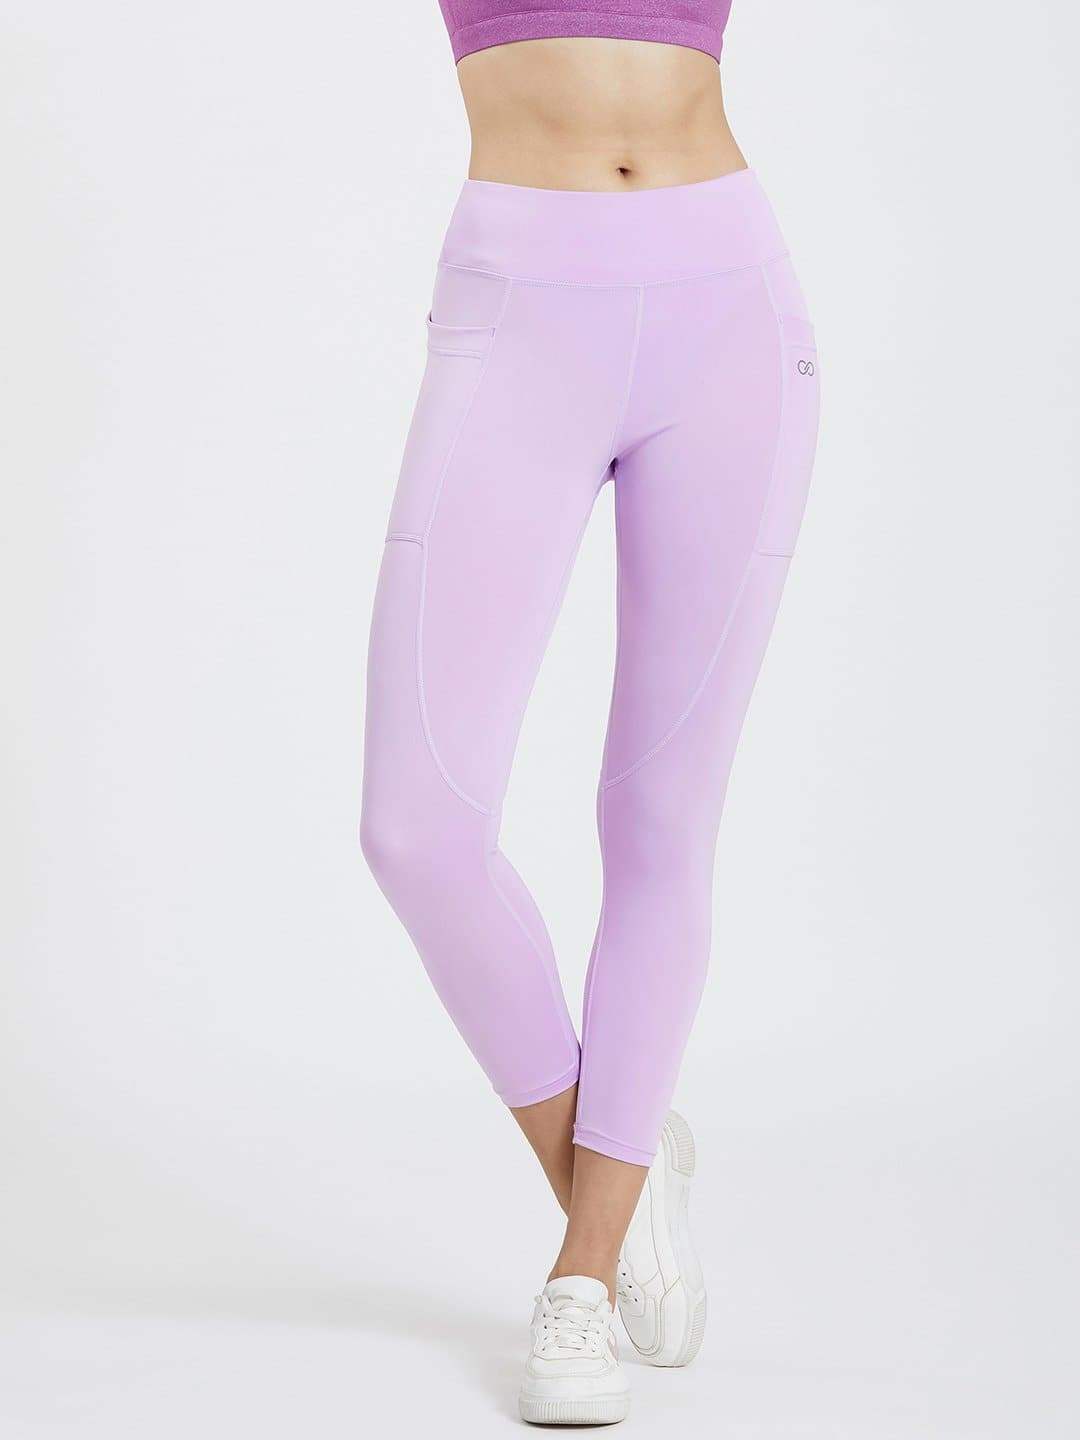 Lavender Violet Pockets Leggings